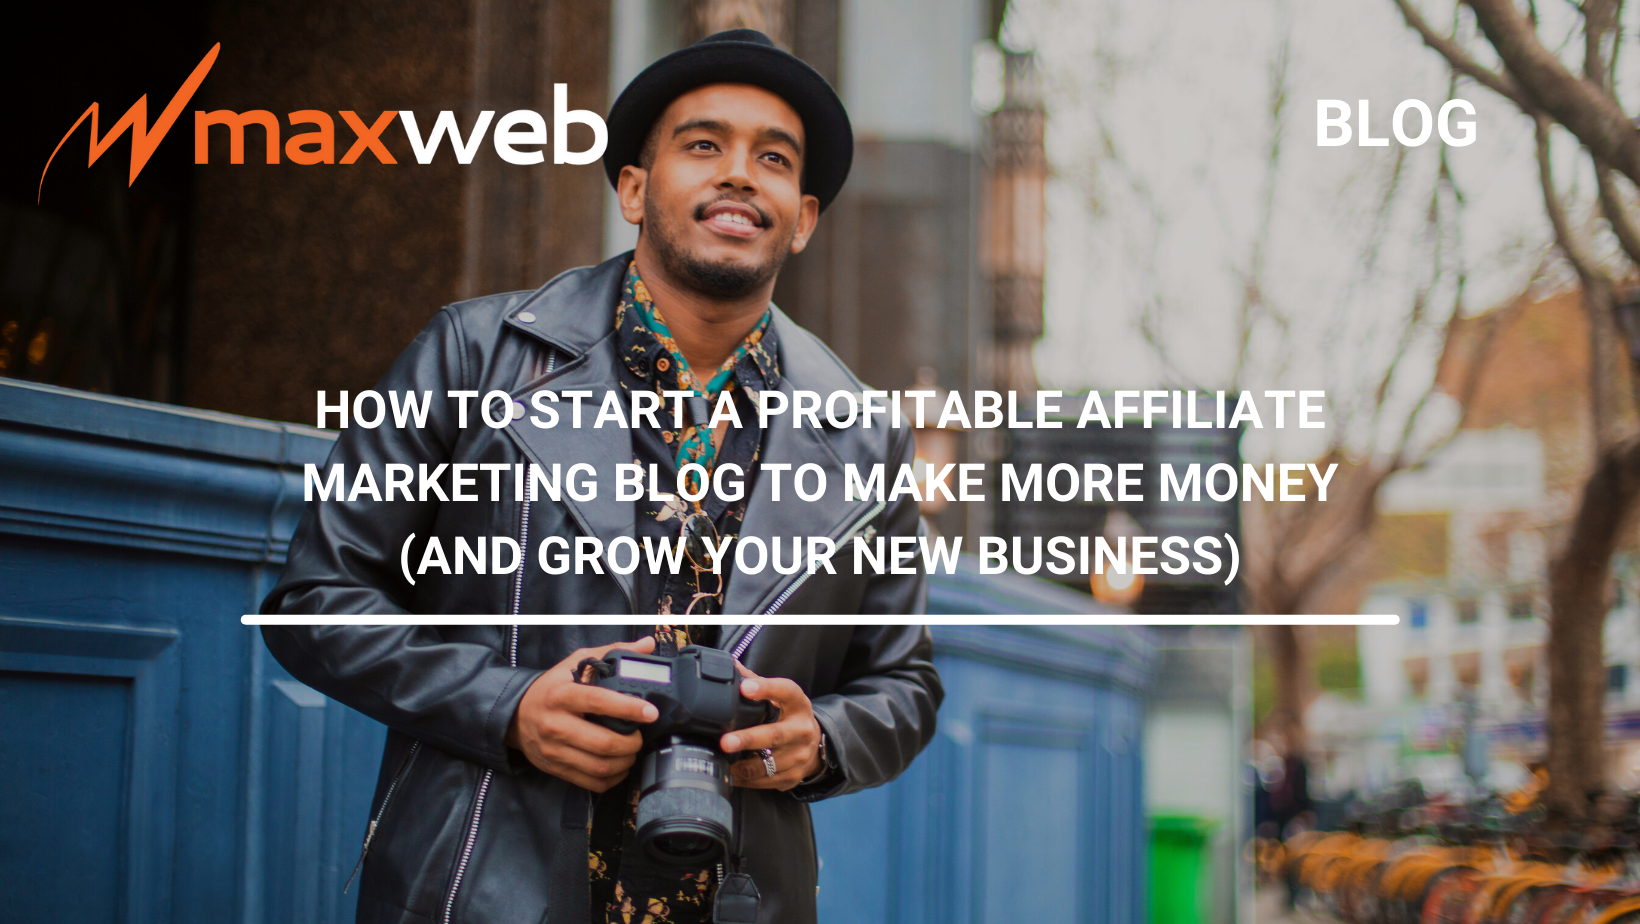 How to Start A Profitable Affiliate Marketing Blog to Make More Money